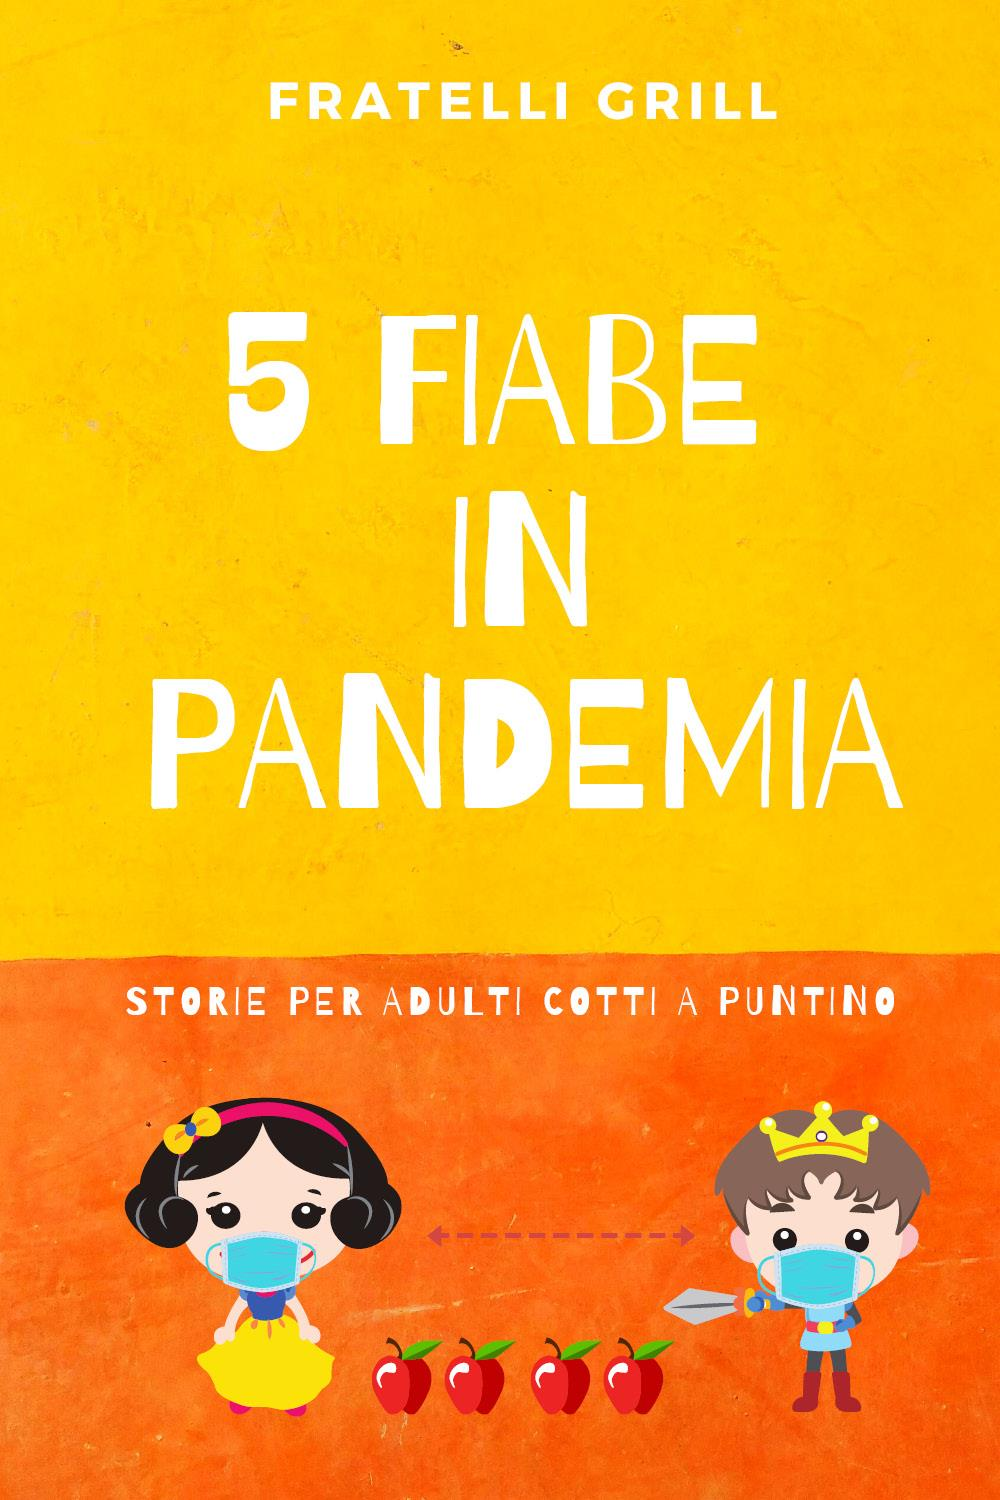 5 Fiabe in pandemia - Storie per adulti cotti a puntino